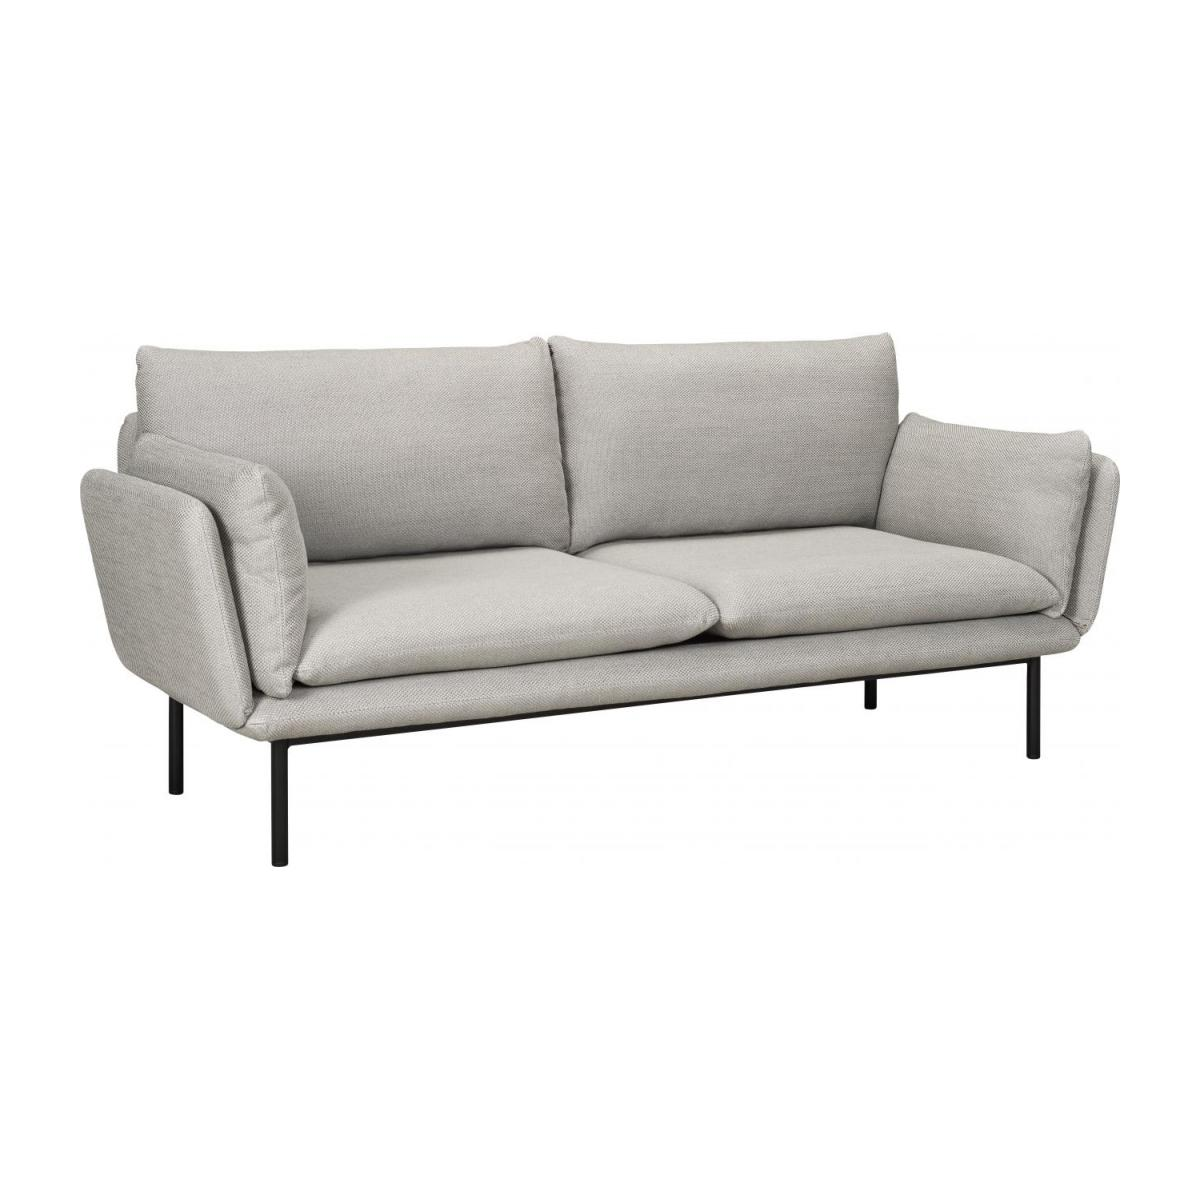 riva 3 sitzer sofa aus stoff grau habitat. Black Bedroom Furniture Sets. Home Design Ideas